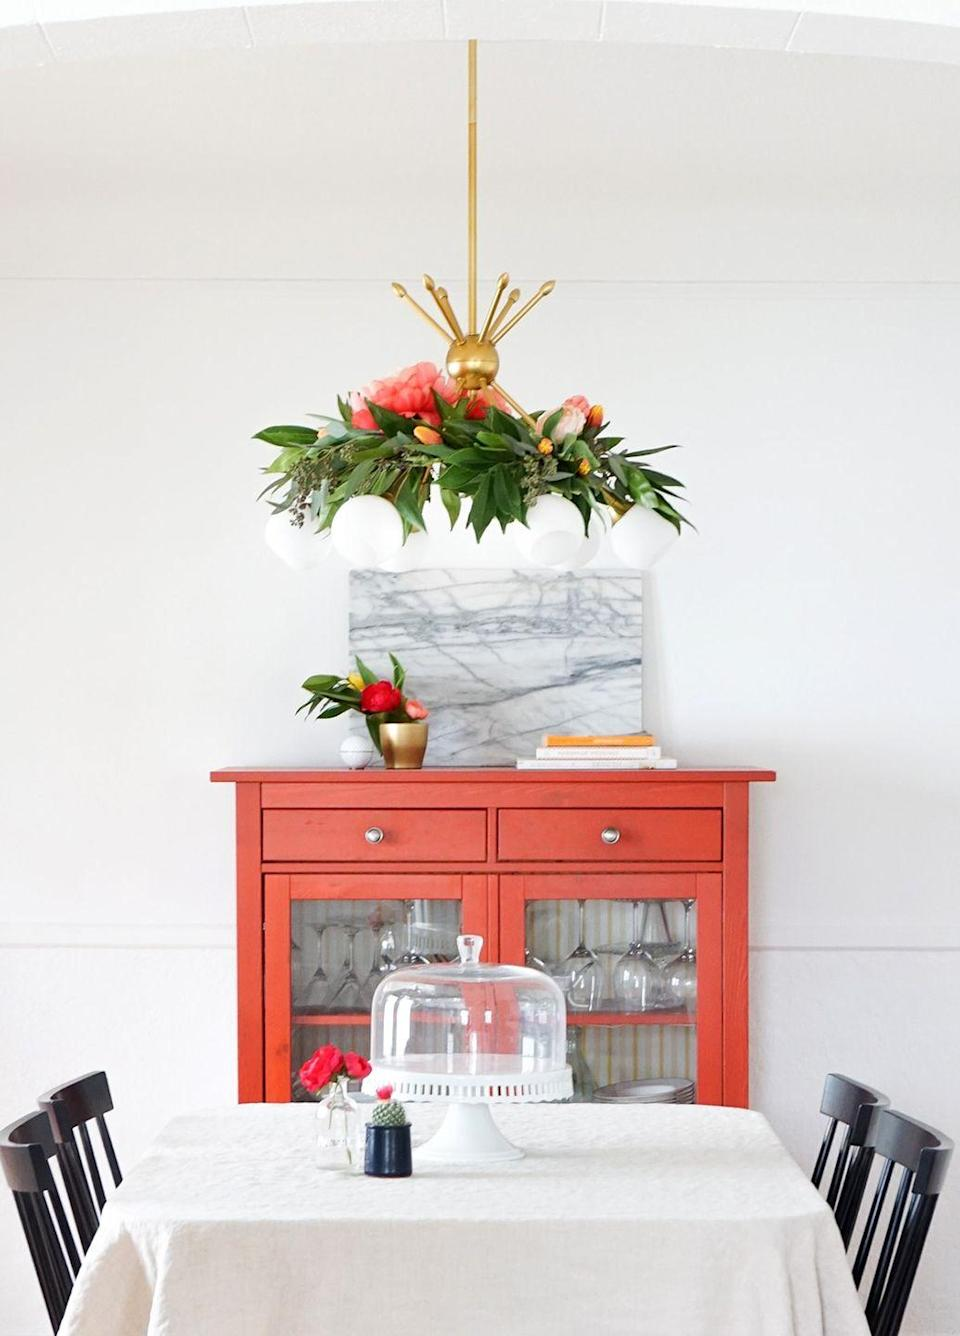 """<p>Make this sophisticated garland even more holiday-appropriate by using red or white poinsettias. </p><p><a href=""""https://sugarandcloth.com/diy-floral-chandelier/"""" rel=""""nofollow noopener"""" target=""""_blank"""" data-ylk=""""slk:Get the tutorial."""" class=""""link rapid-noclick-resp"""">Get the tutorial.</a></p><p><a class=""""link rapid-noclick-resp"""" href=""""https://www.amazon.com/dp/B07W6TWD6V?tag=syn-yahoo-20&ascsubtag=%5Bartid%7C10072.g.37499128%5Bsrc%7Cyahoo-us"""" rel=""""nofollow noopener"""" target=""""_blank"""" data-ylk=""""slk:SHOP FLORAL WIRE"""">SHOP FLORAL WIRE</a></p>"""